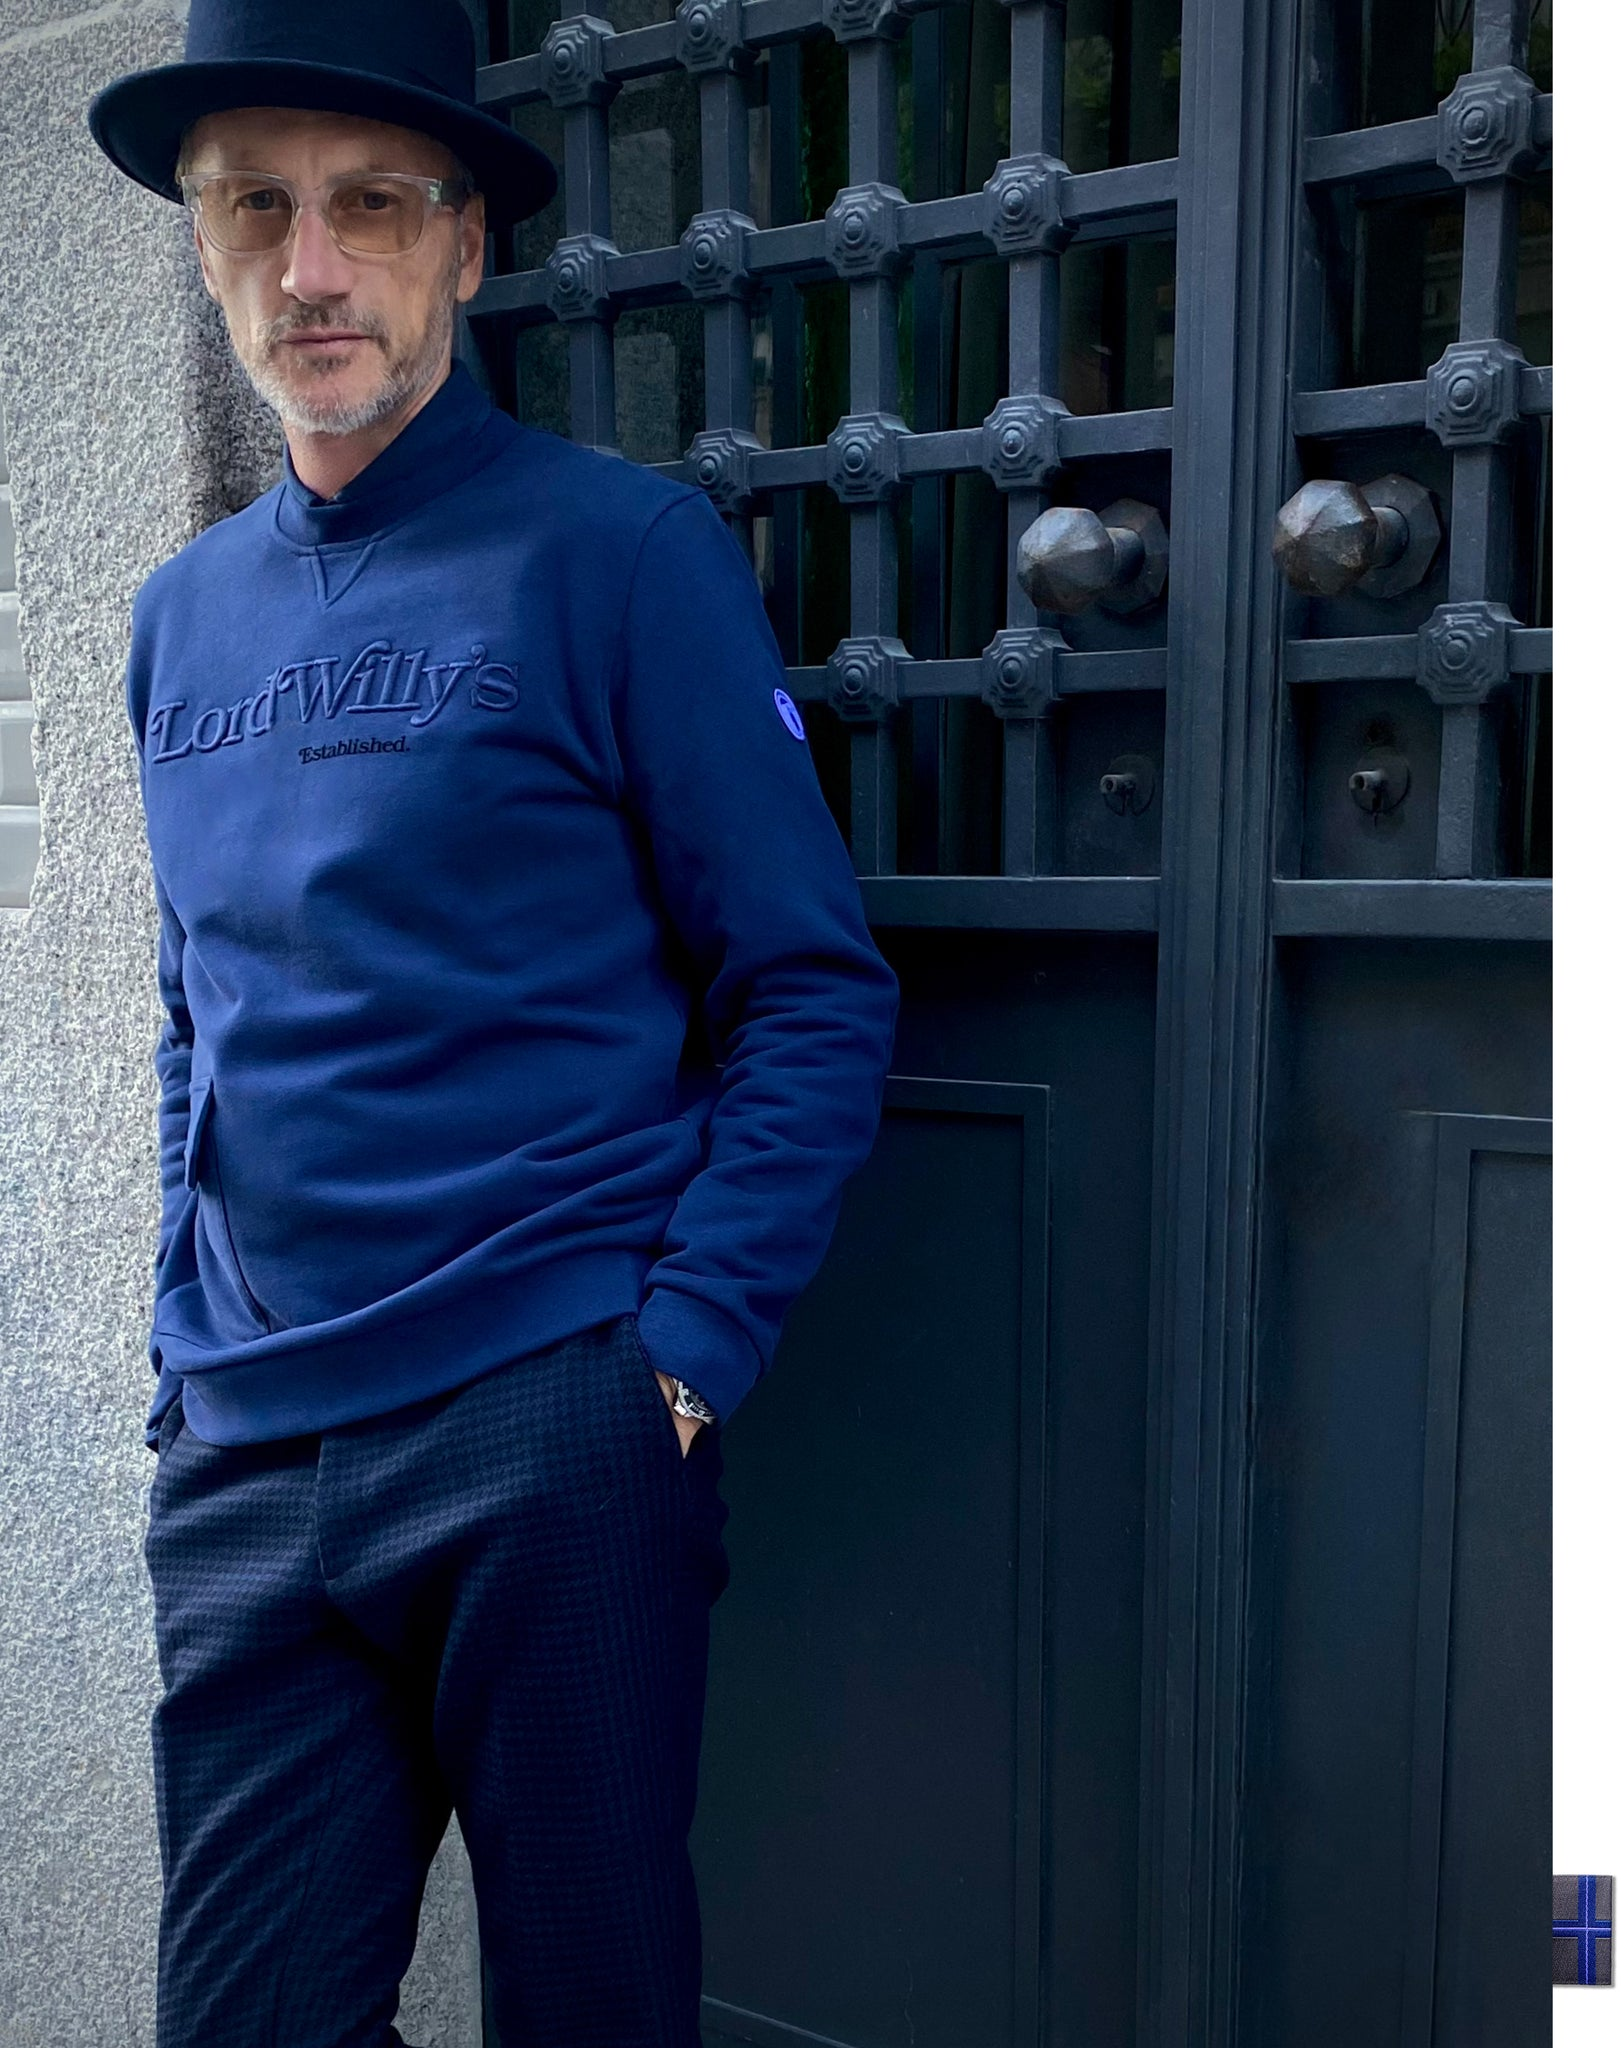 Man in navy sweatshirt with Lord Willy's embroidered on it.